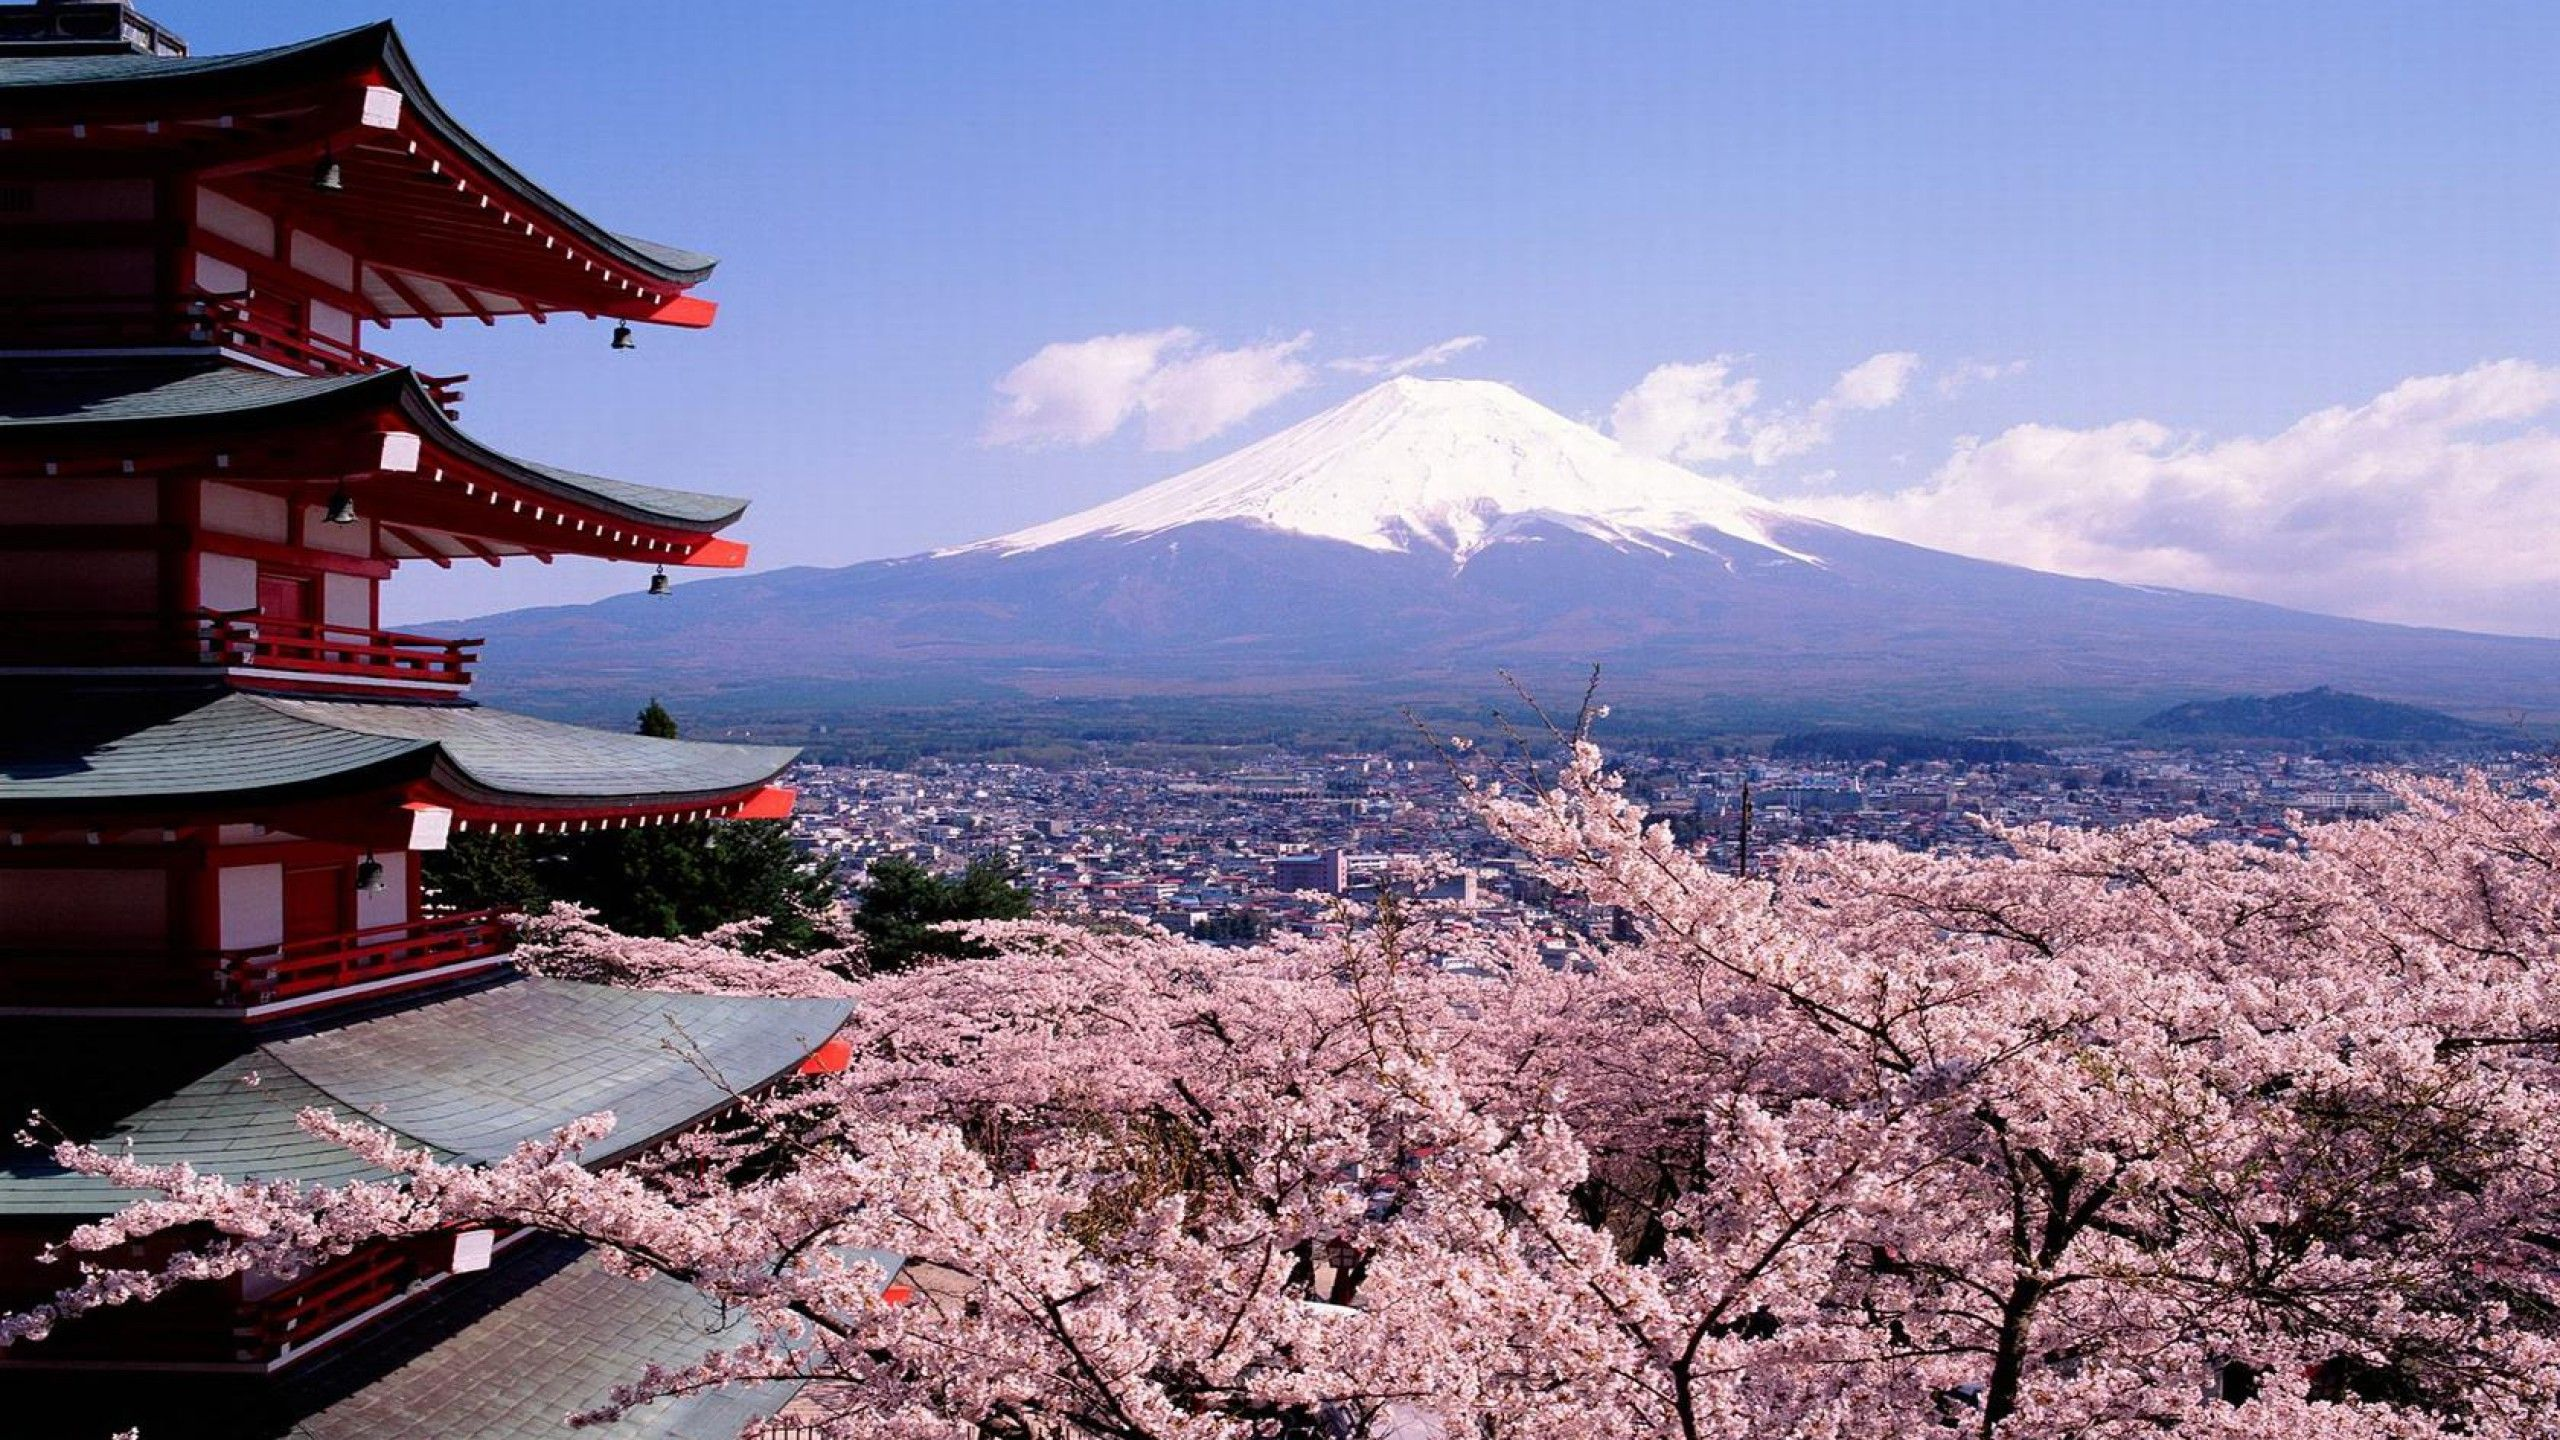 Asia Travel Wallpapers   Top Asia Travel Backgrounds 2560x1440